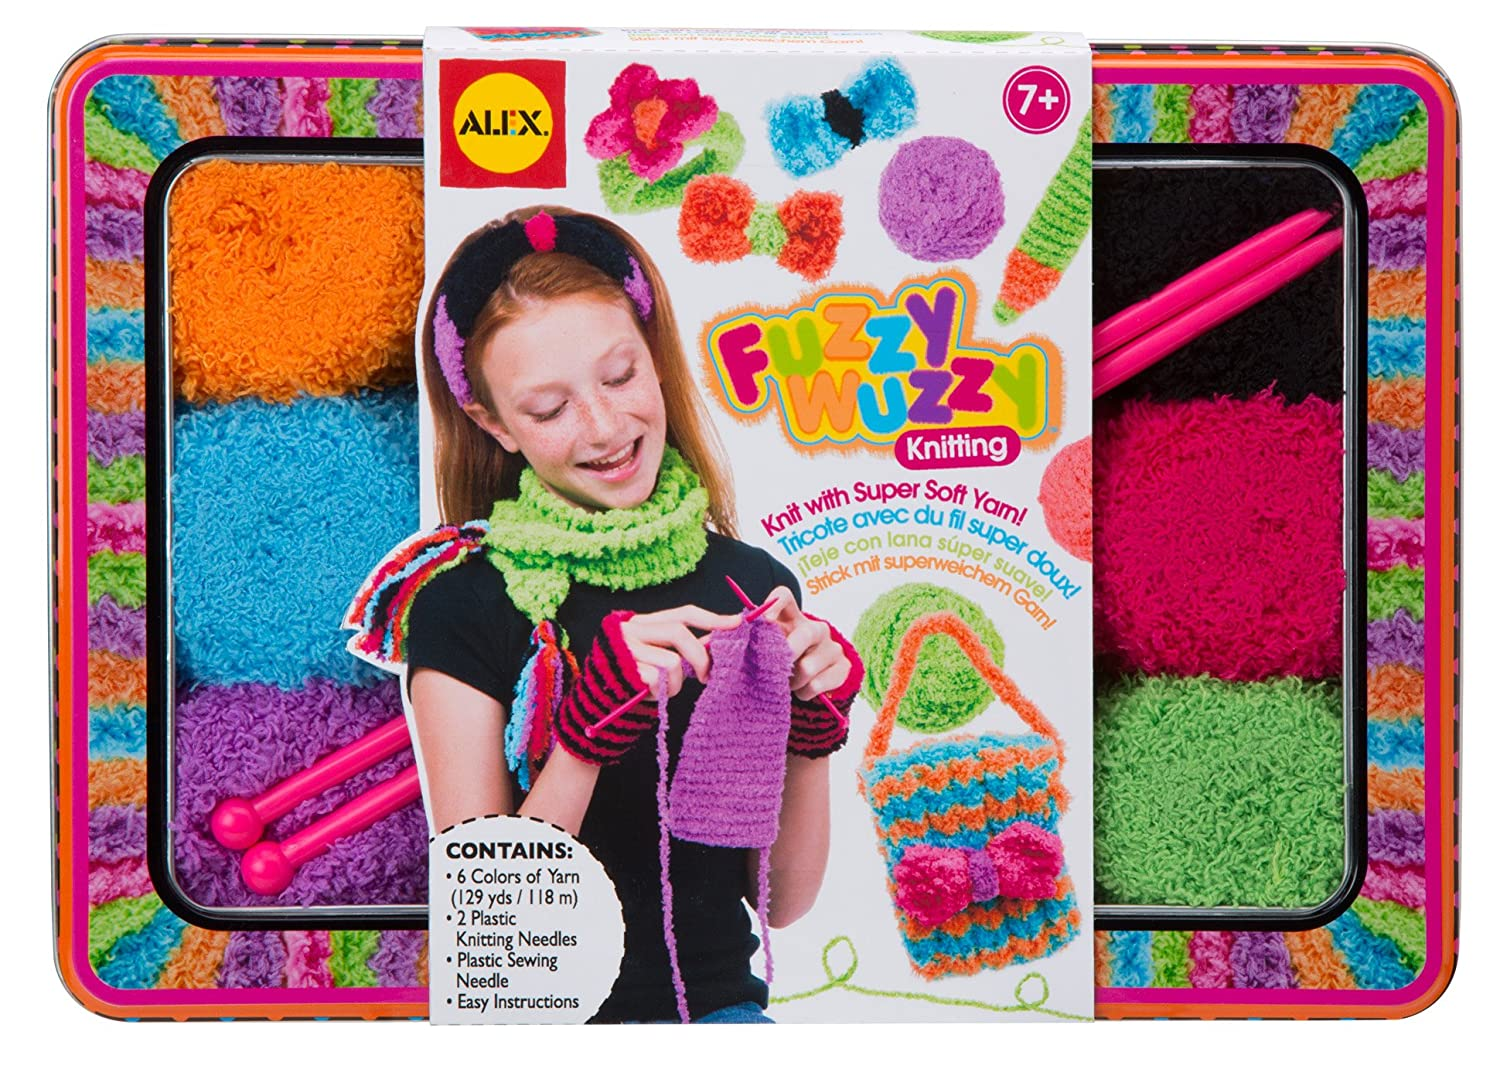 ALEX Toys - Craft, Fuzzy Wuzzy Knitting Kit